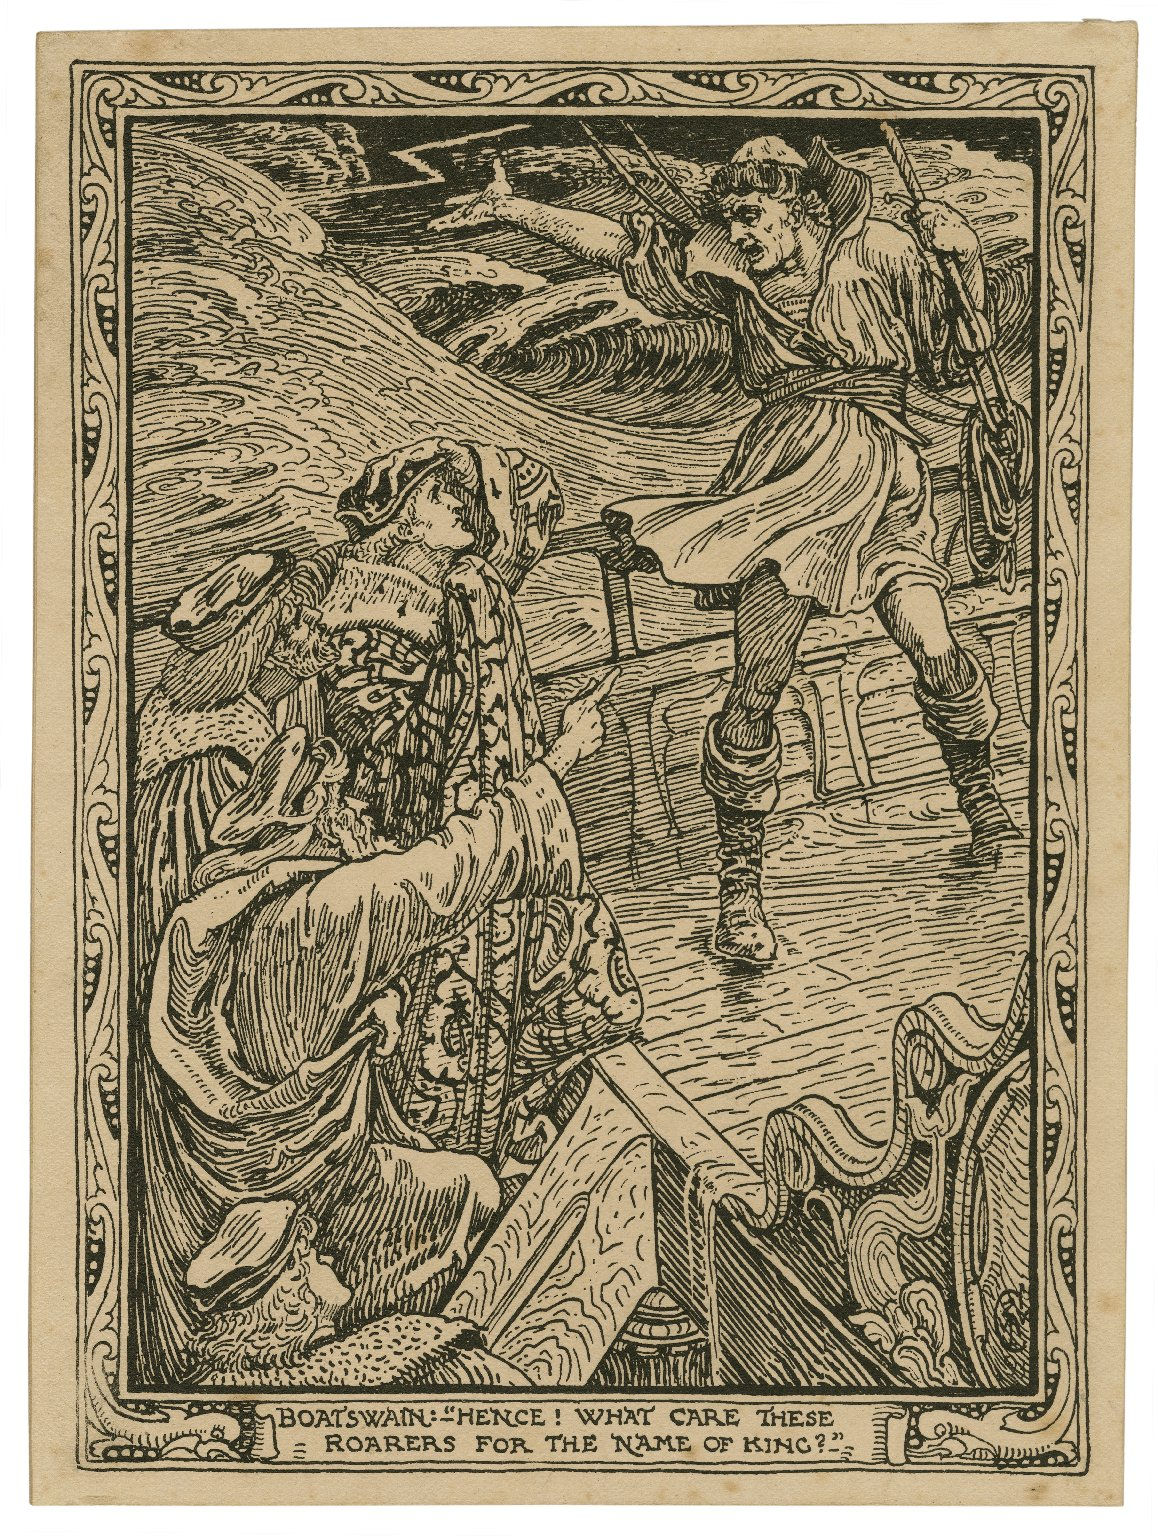 """Boatswain: """"Hence! What care these roarers for the name of king?"""" [Tempest, act I, scene I] [graphic] / C."""